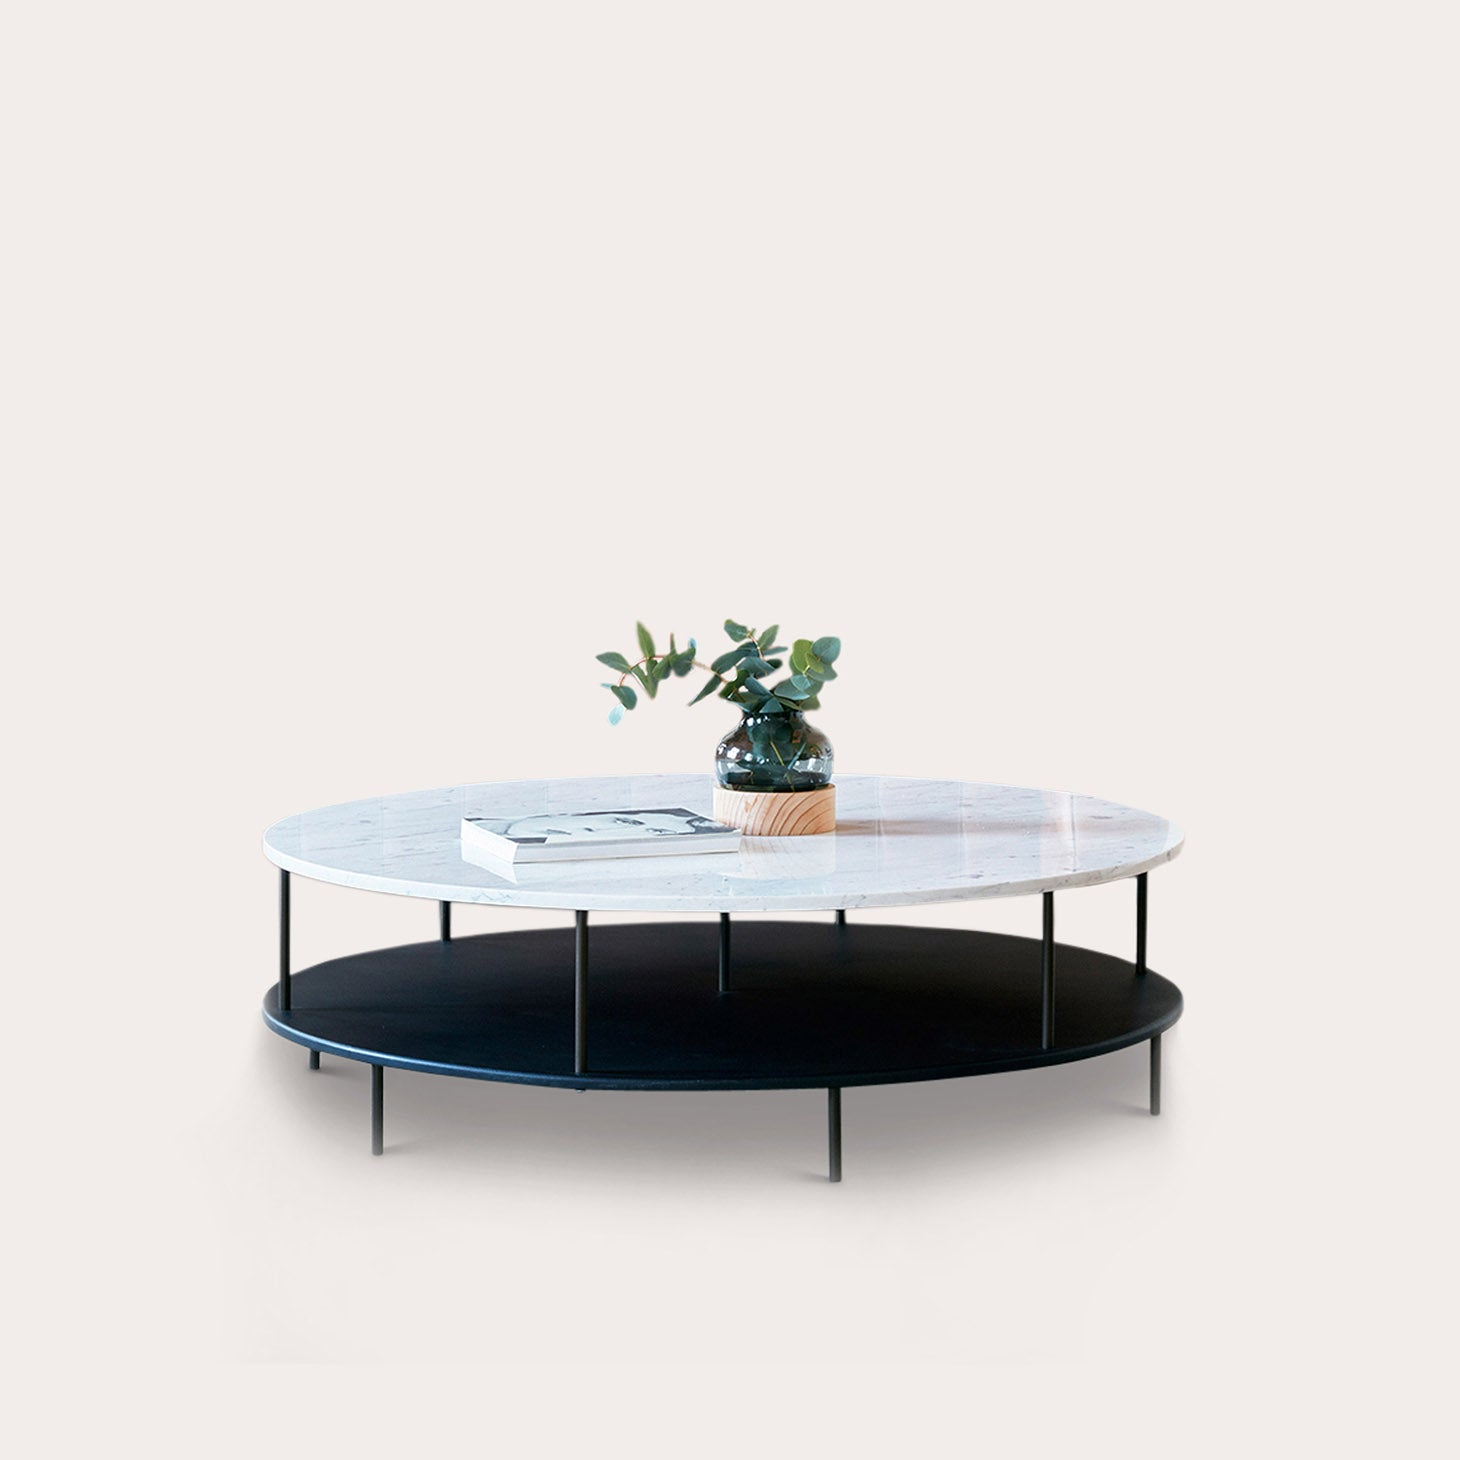 DD Table Tables Jaime Hayon Designer Furniture Sku: 758-230-10029